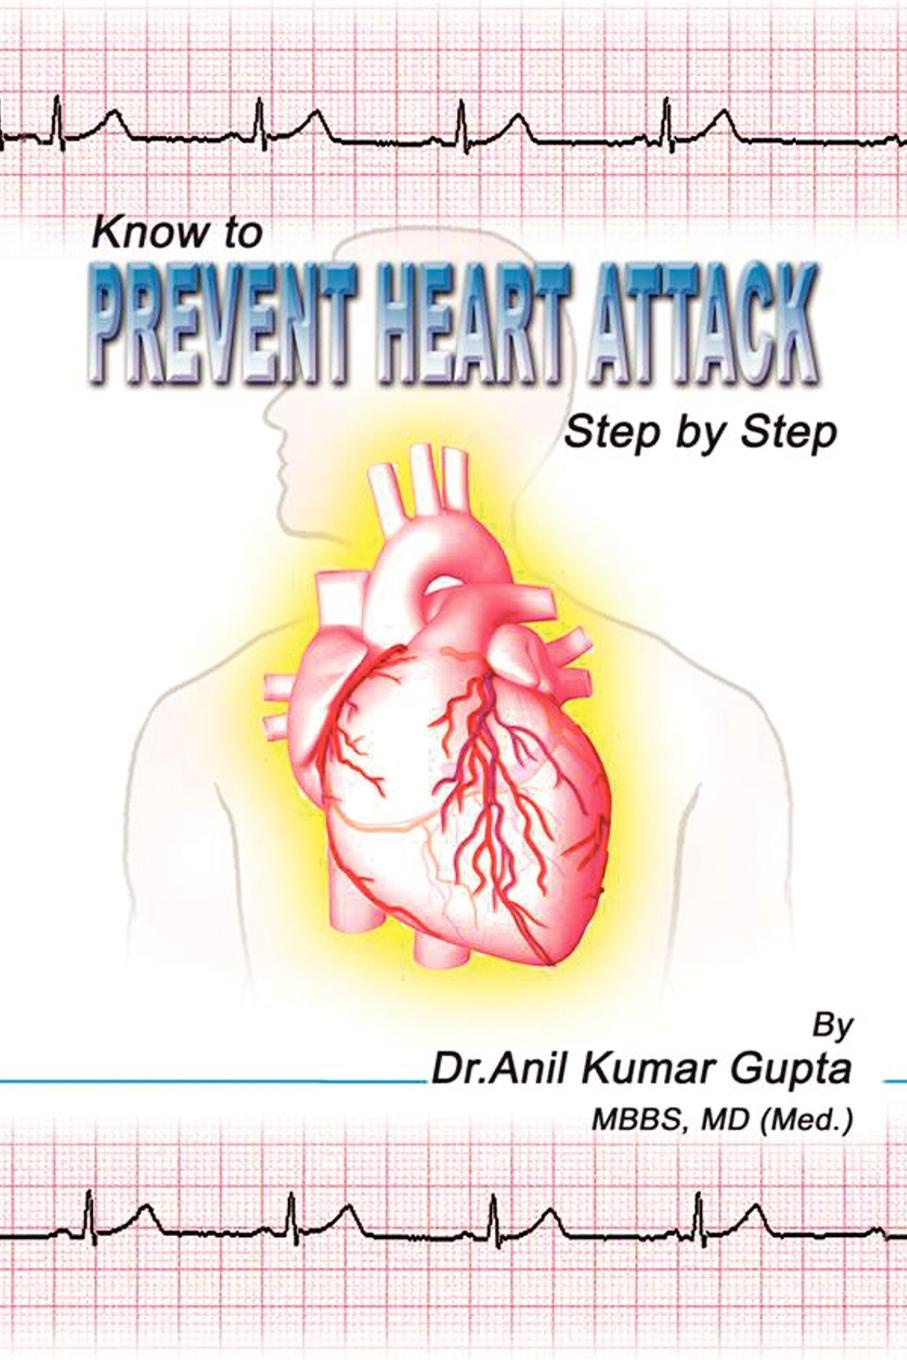 MD (Med.) Dr. Anil Kumar Gupta MBBS Know to Prevent Heart Attack Step by